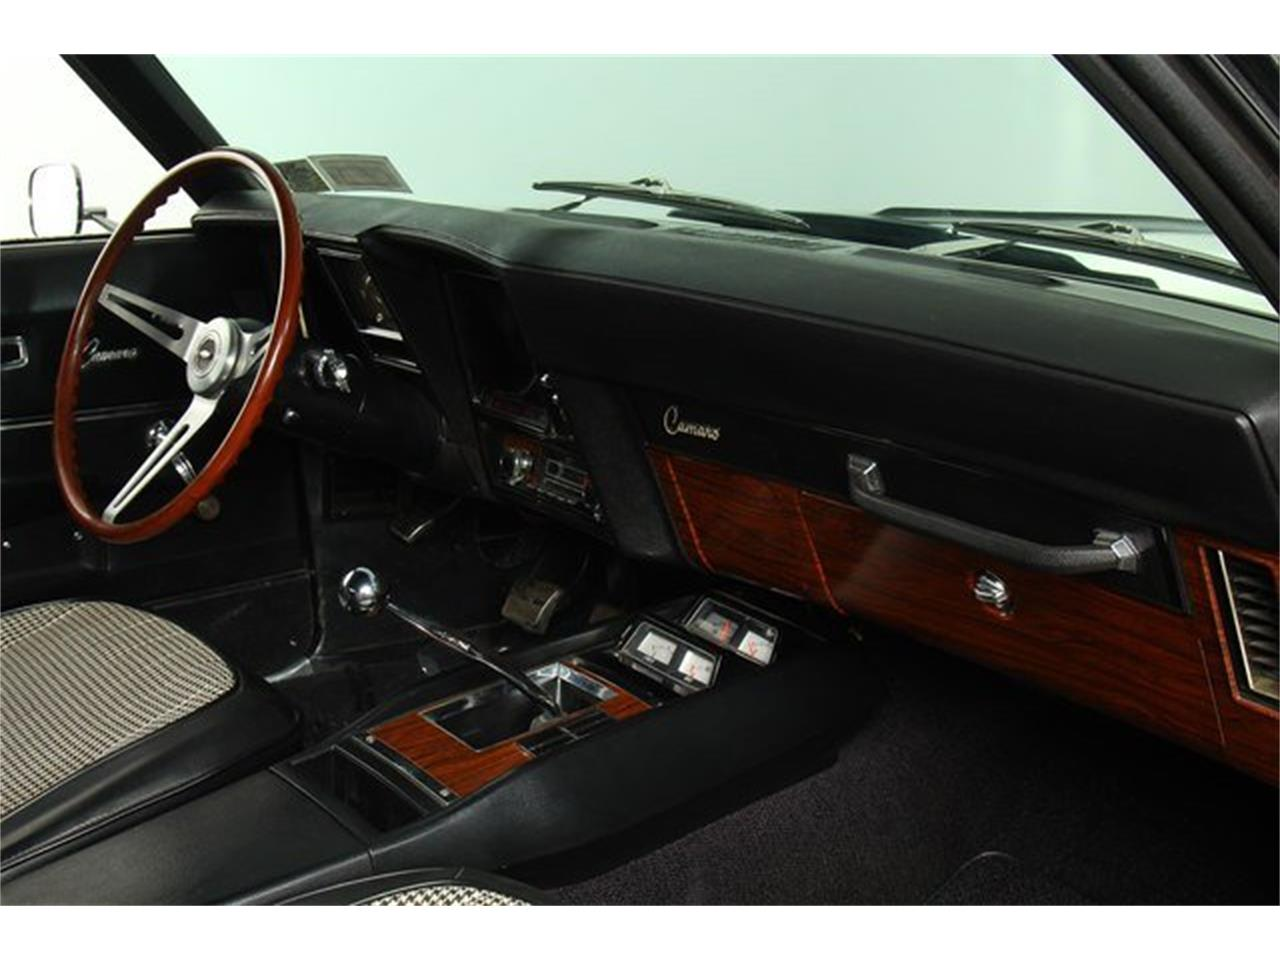 Large Picture of Classic '69 Camaro - $71,900.00 Offered by Sunnyside Chevrolet - PJ4L